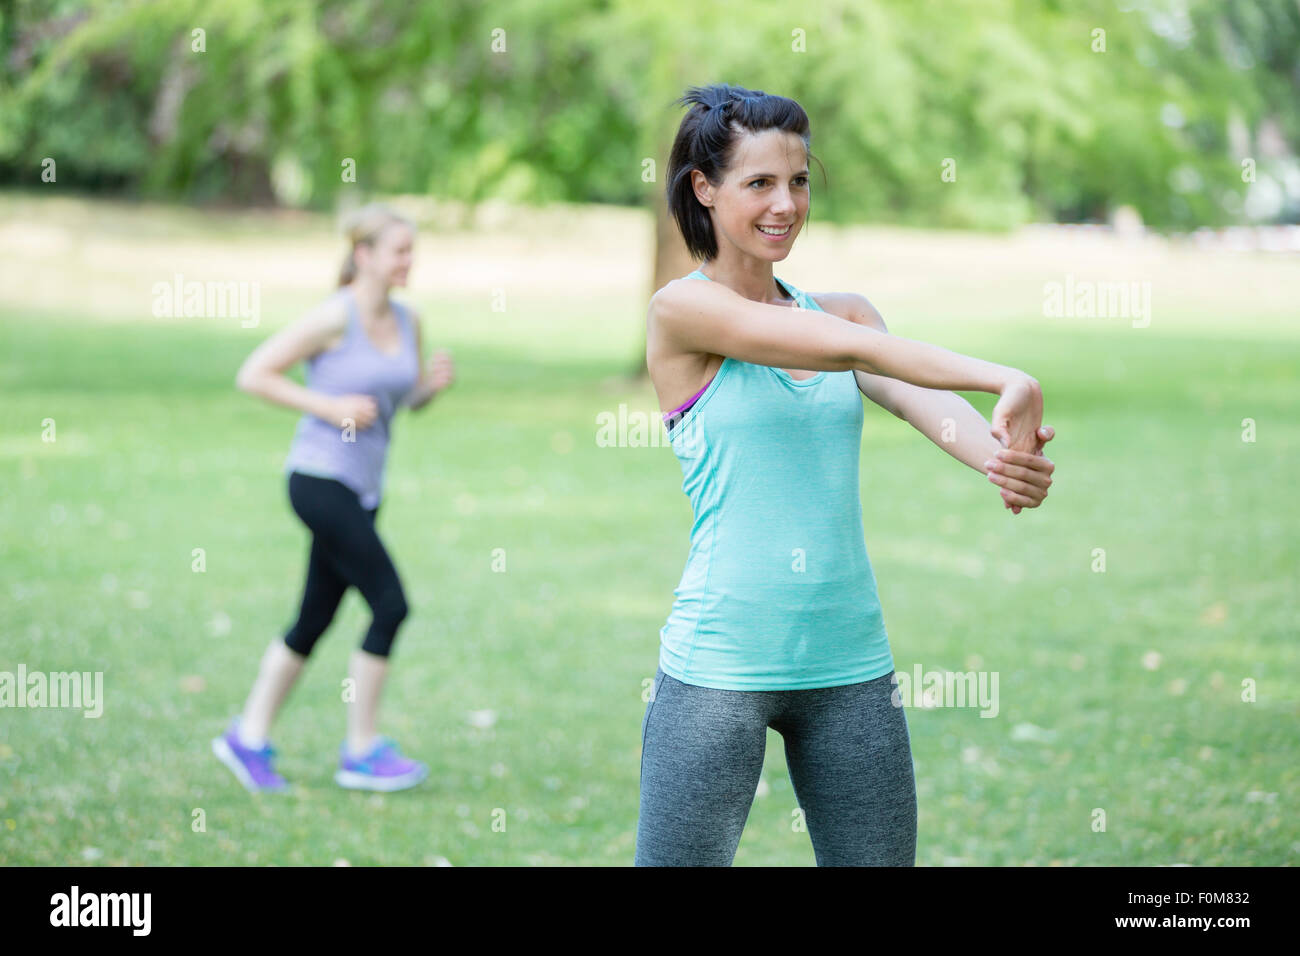 Two women stretch, warm up - Stock Image